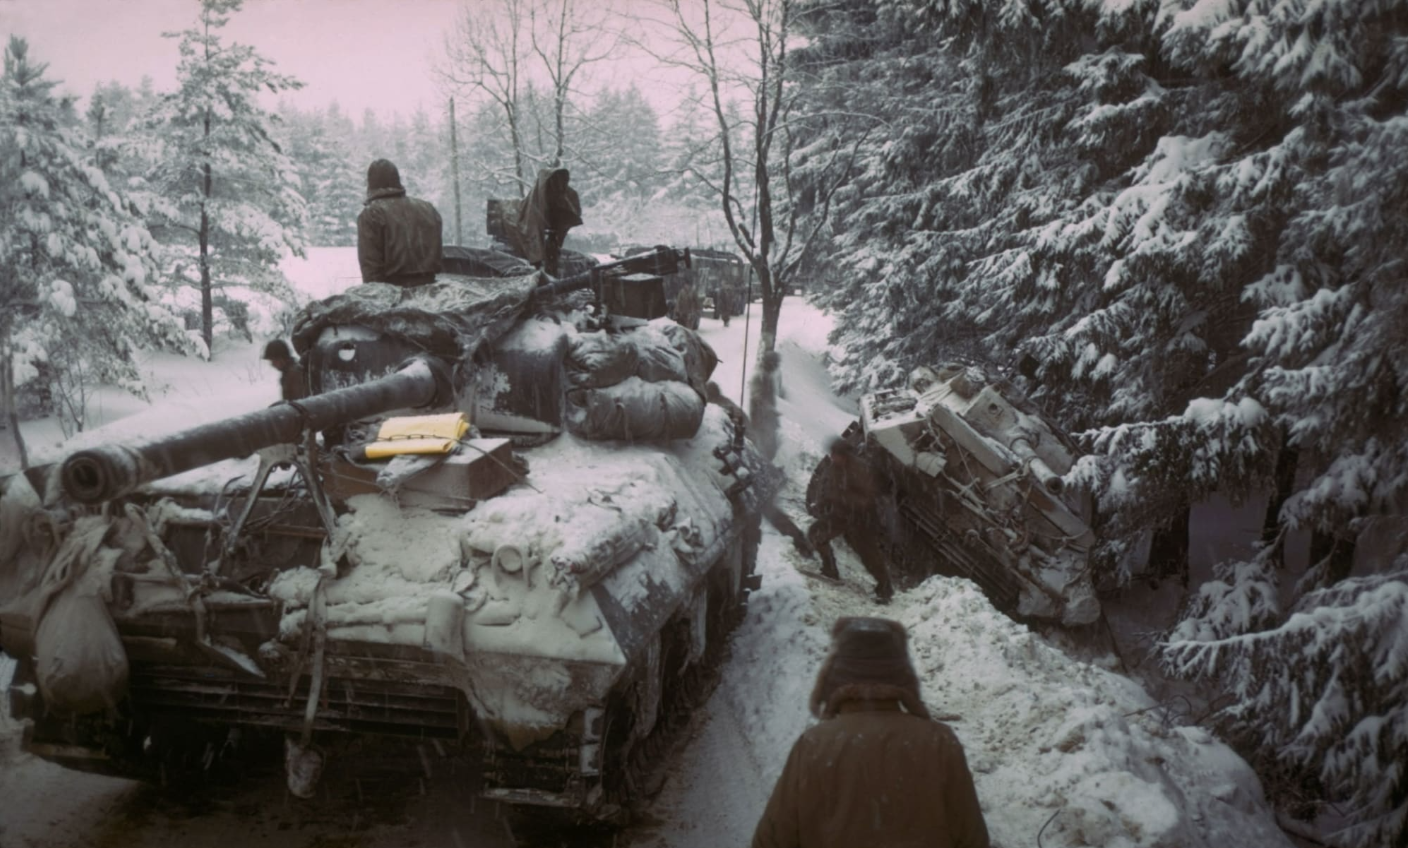 Soldiers in a tank during the Battle of the Bulge